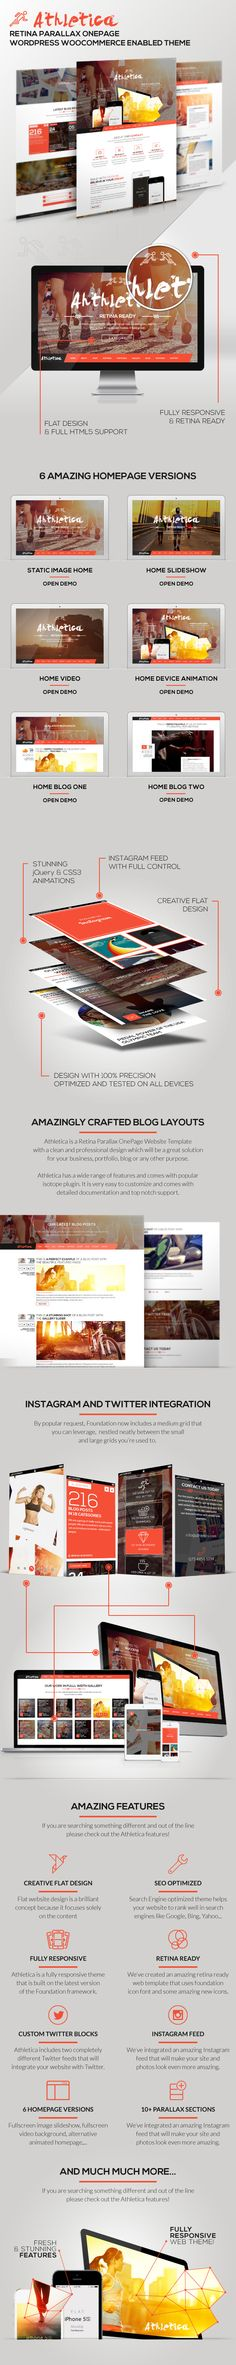 Buy Athletica - Retina Parallax OnePage WP Shop Theme by AVAThemes on ThemeForest. Description Athletica is a Retina Parallax OnePage WordPress WooCommerce enabled Theme with a clean and professional. Great Website Design, Modern Website, Website Design Inspiration, Event Website, Website Themes, Page Design, Web Design, Graphic Design, Gui Interface